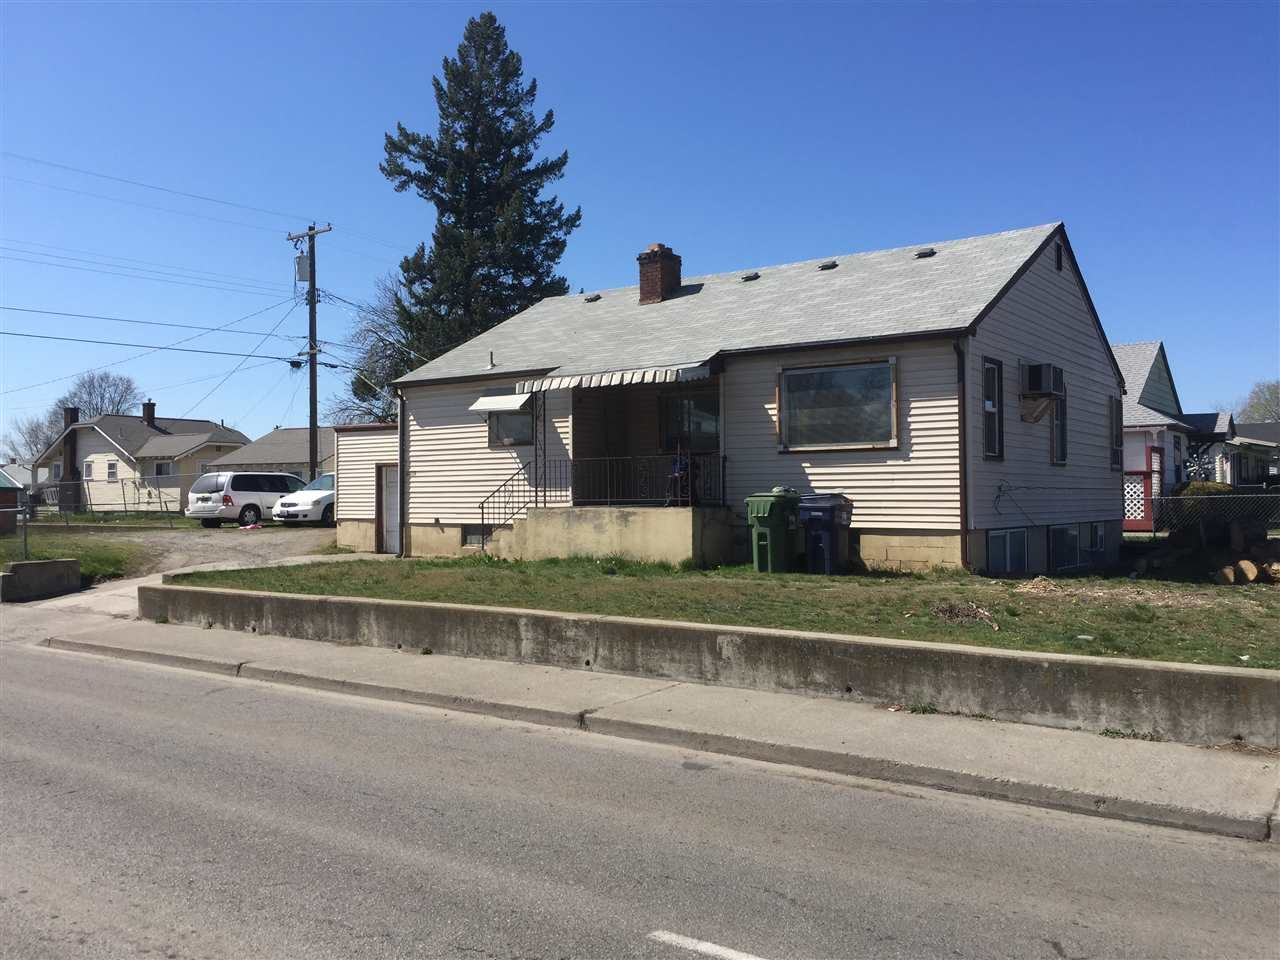 3319 N Nevada St, Spokane, WA 99207 - #: 202014233